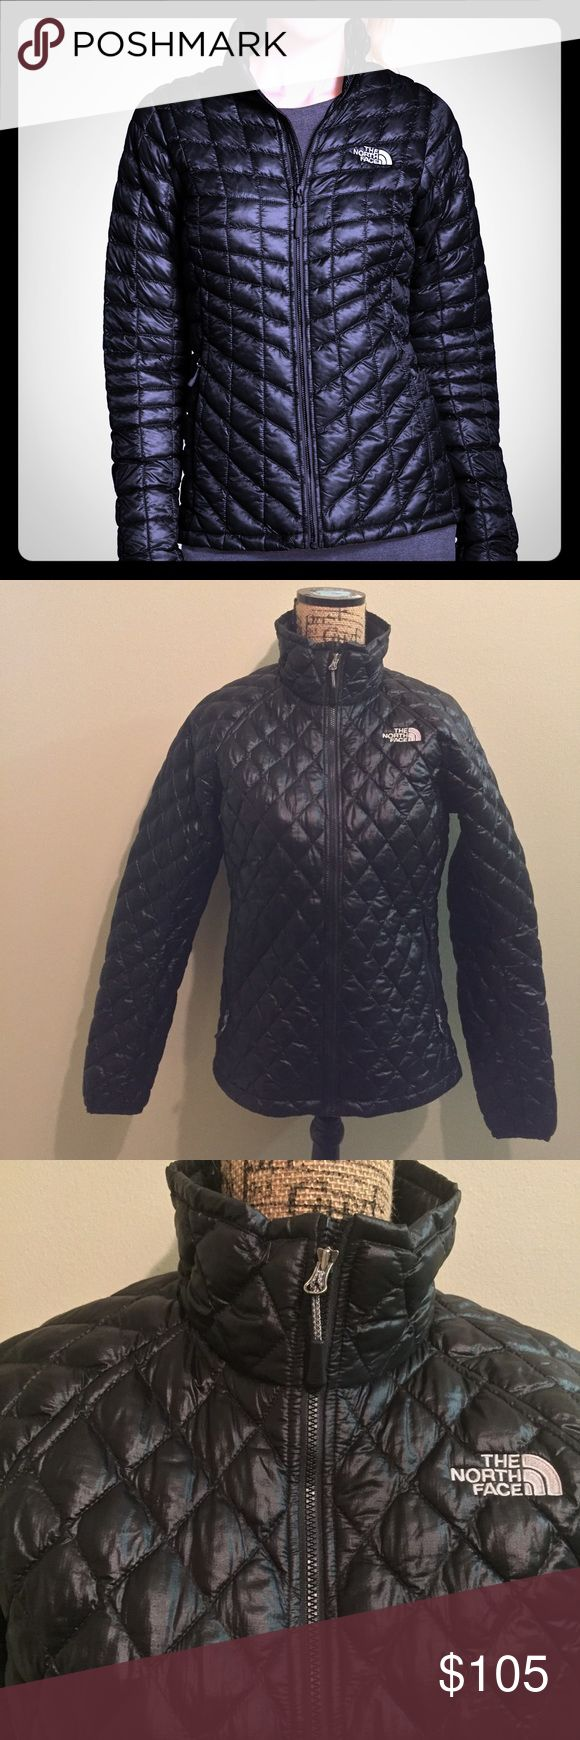 North Face Thermoball Jacket NWOT Quilted black jacket by North Face. Extremely warm, but can be compressed very small. Lightweight AND warm enough for winter. NWOT. Size M. North Face Jackets & Coats